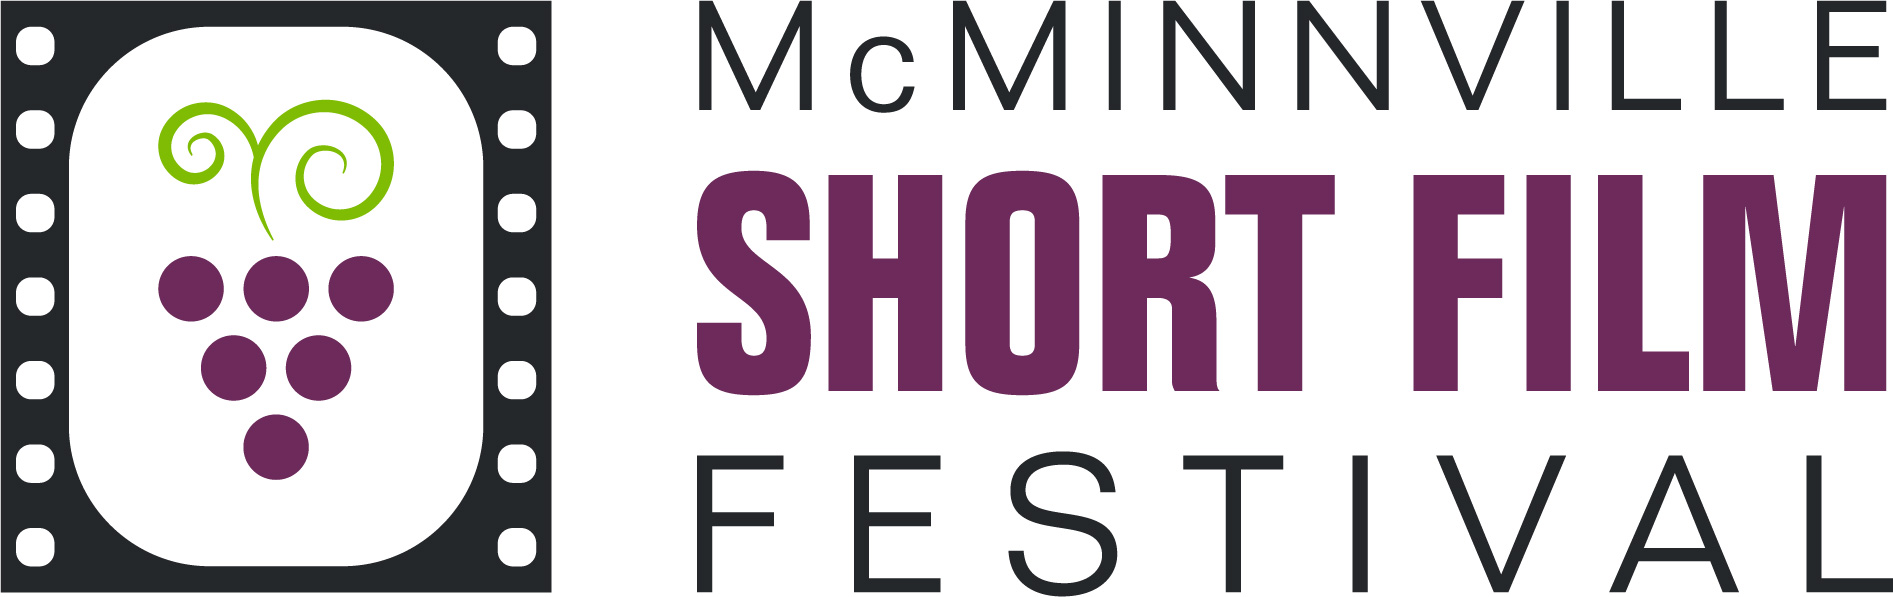 10th Annual McMinnville Short Film Festival